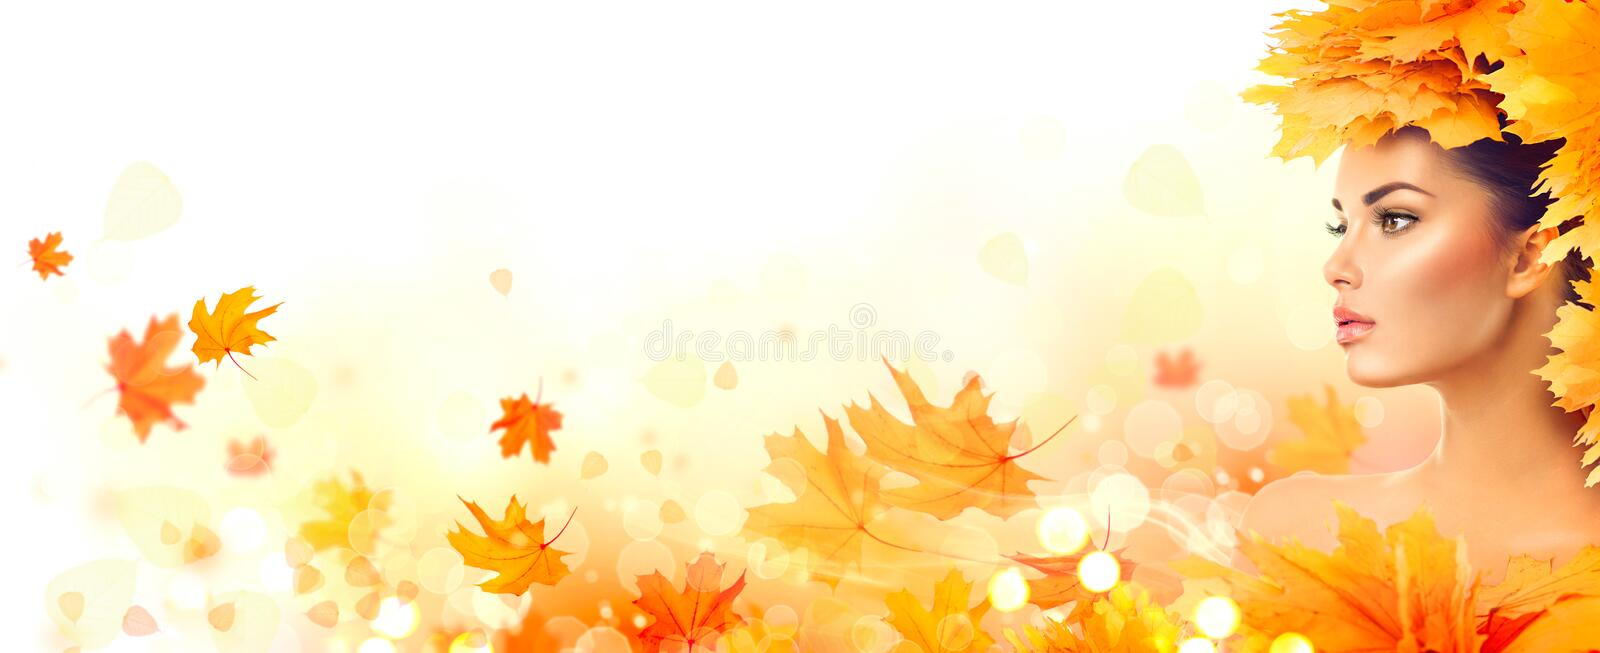 Autumn woman. Fall. Beauty model girl with autumn bright leaves royalty free stock photography